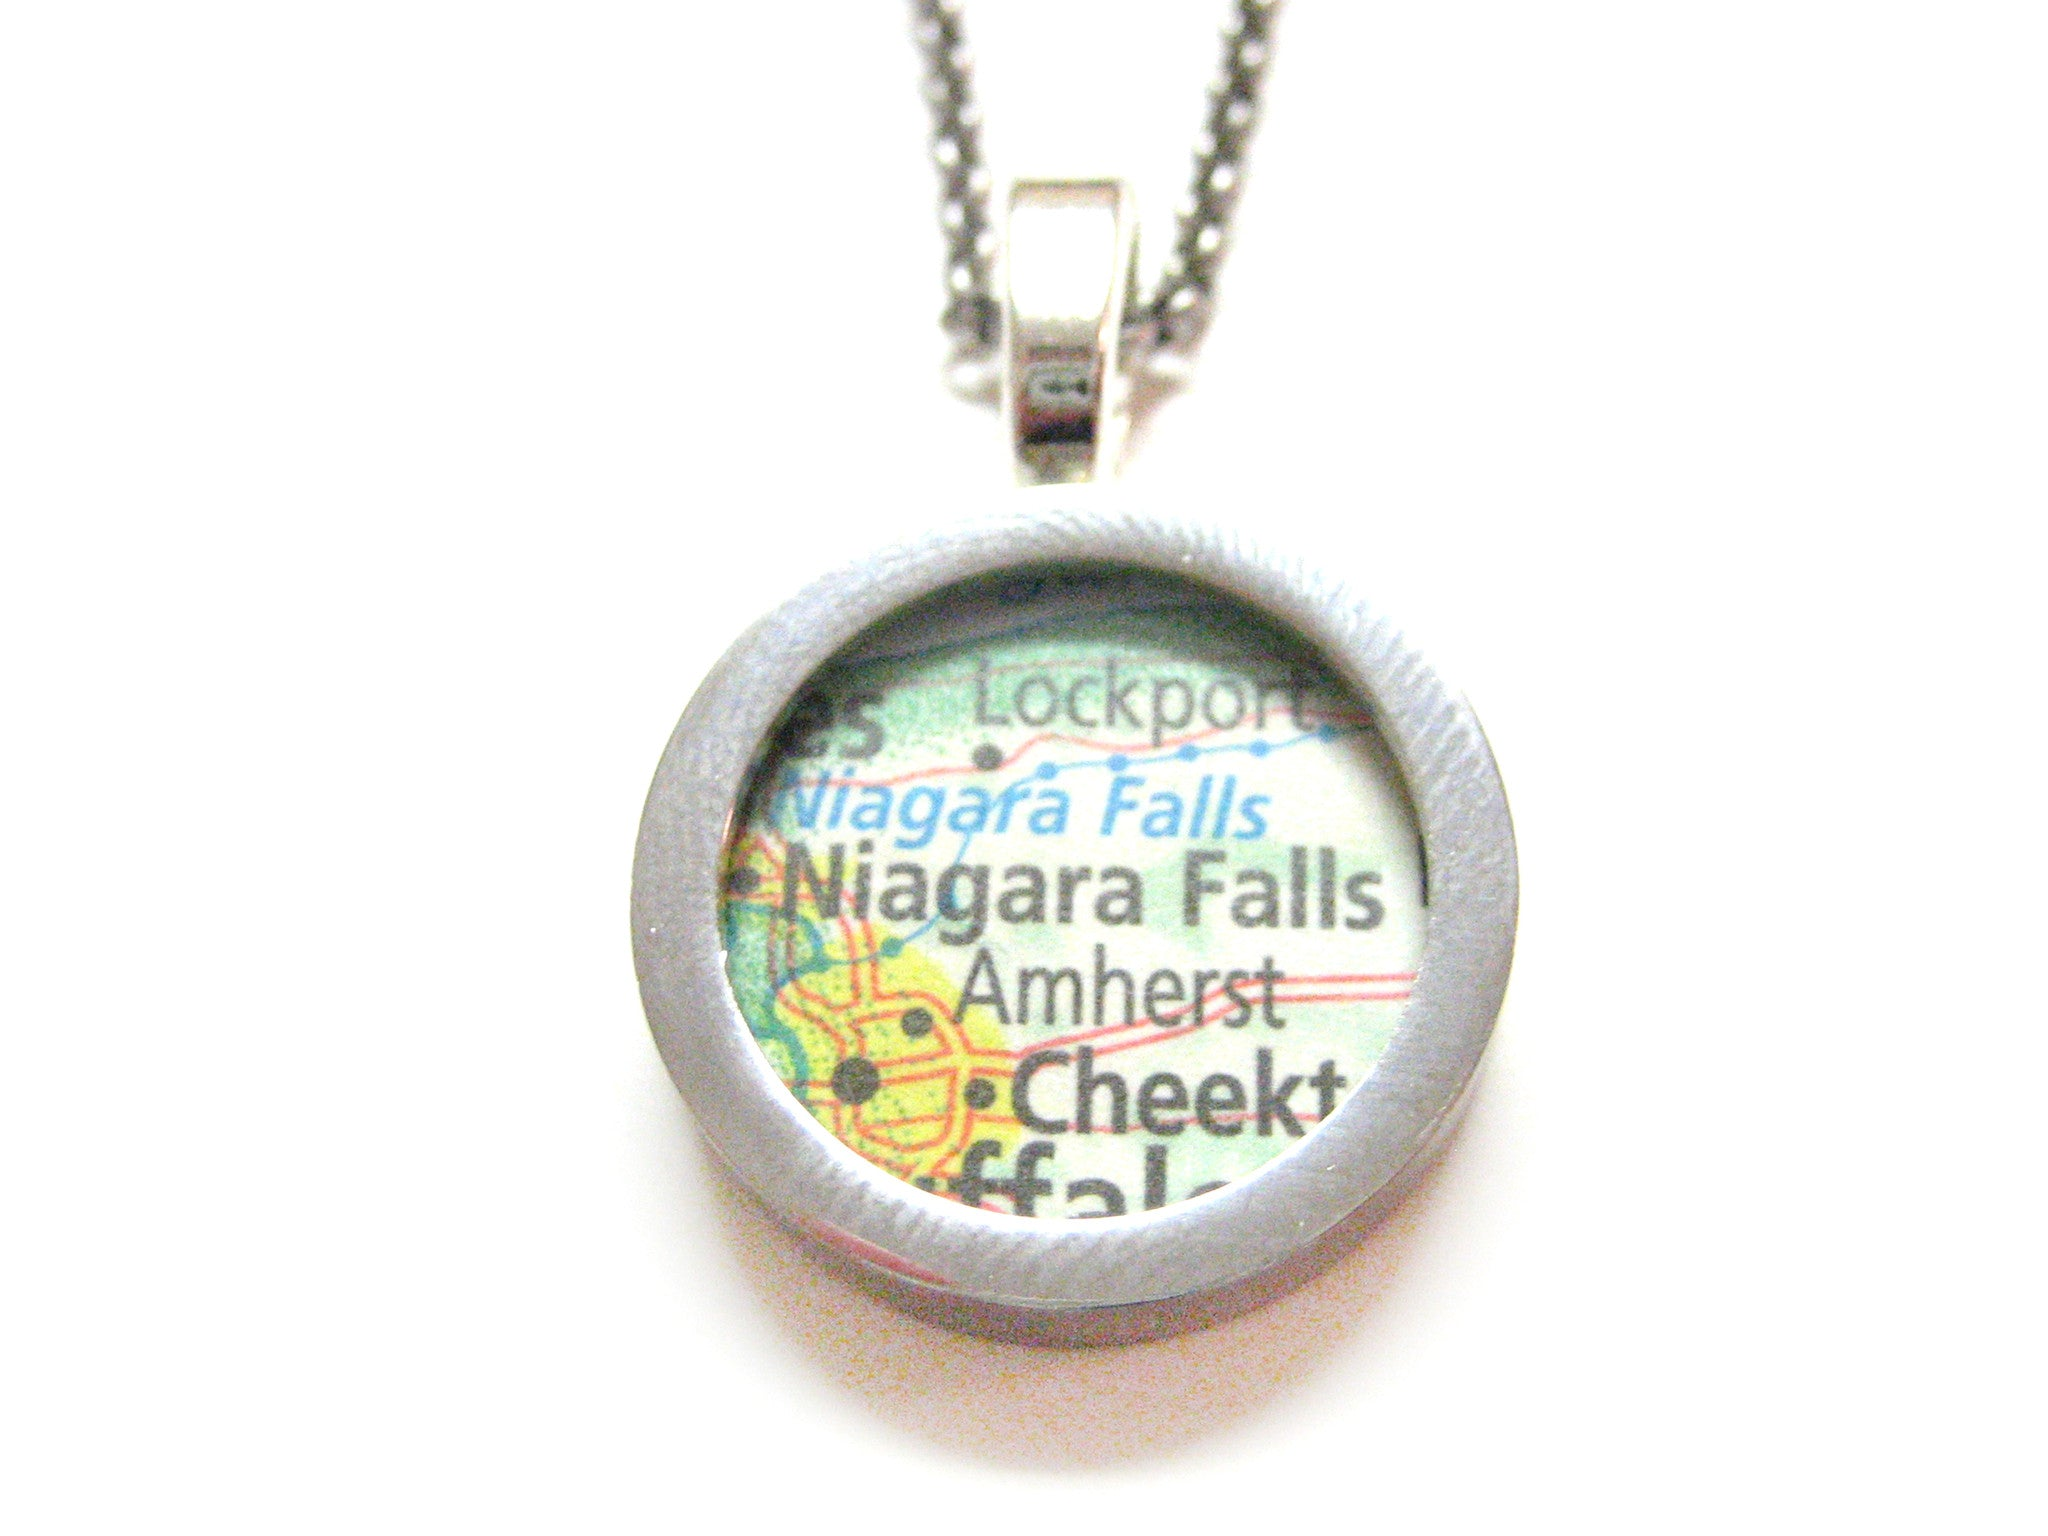 Niagara Falls Map Pendant Necklace